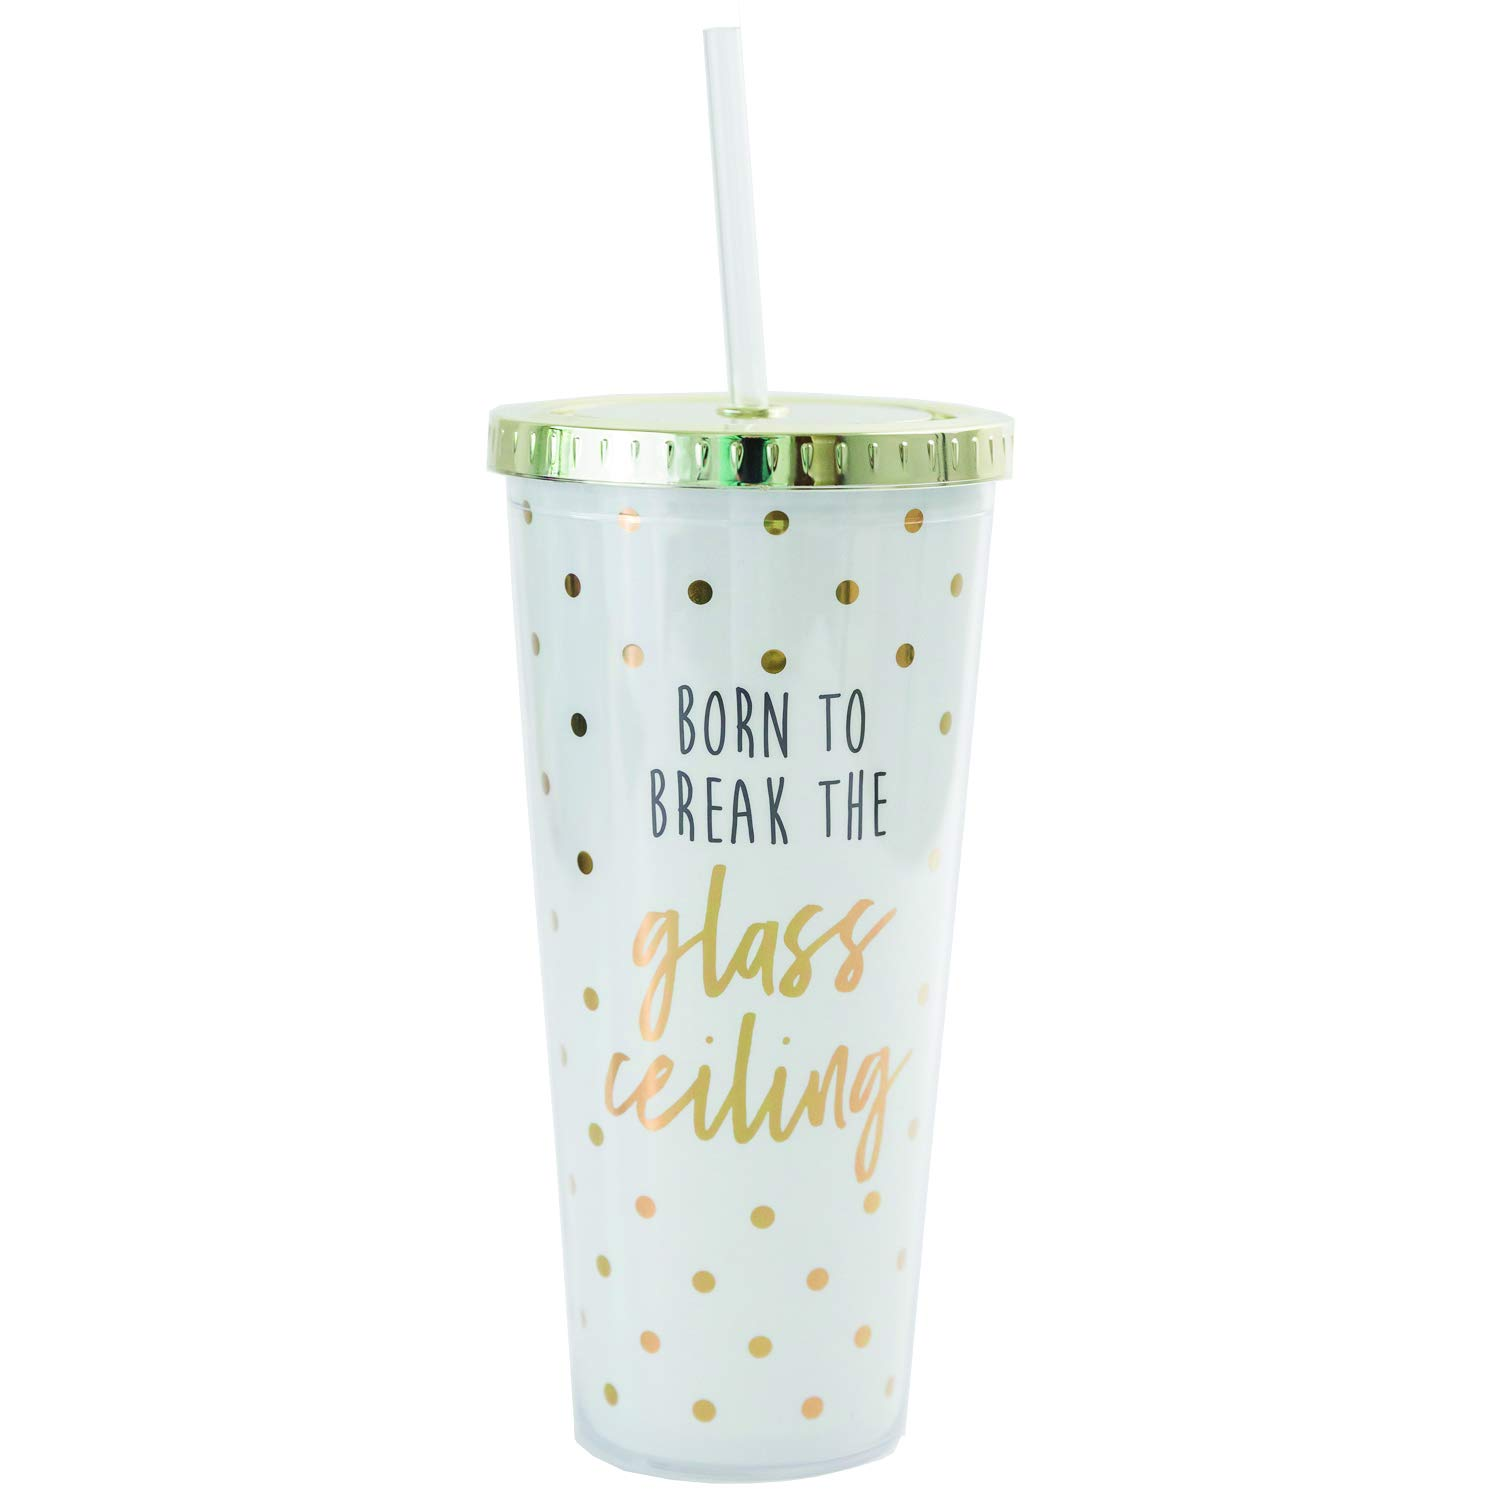 Mary Square 24777 Glass Ceiling Straw Tumbler 24 oz White with Gold polka dots